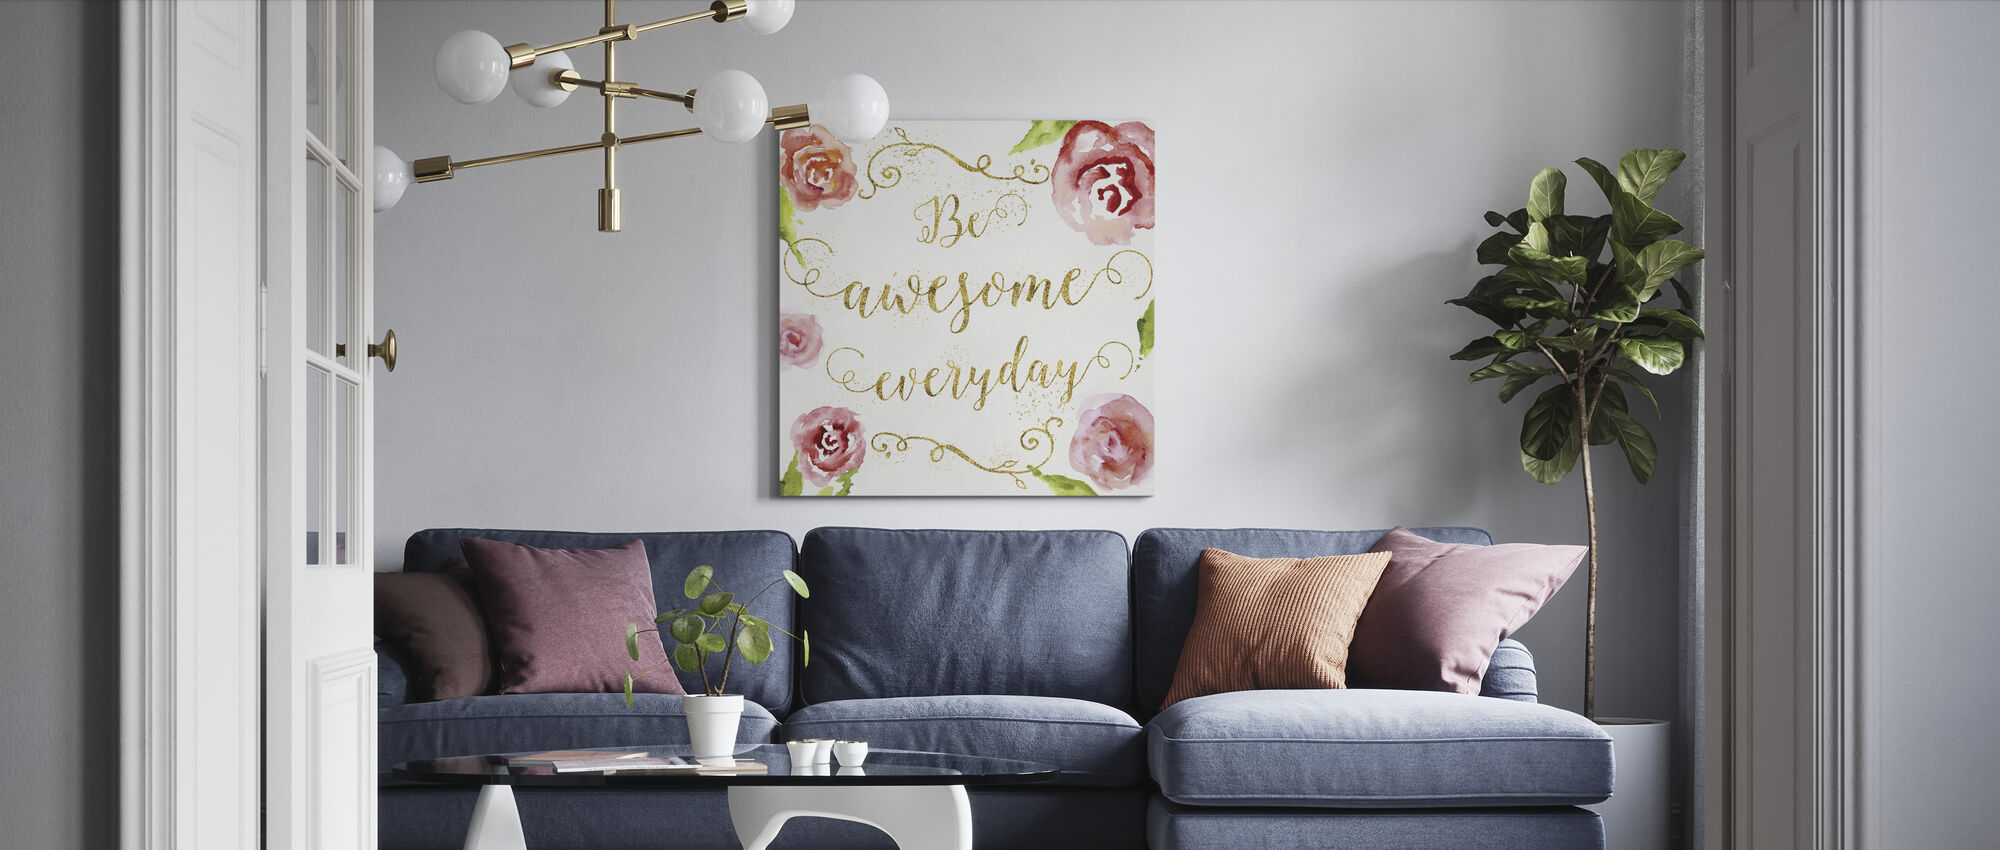 Be Awesome Everyday - Canvas print - Living Room